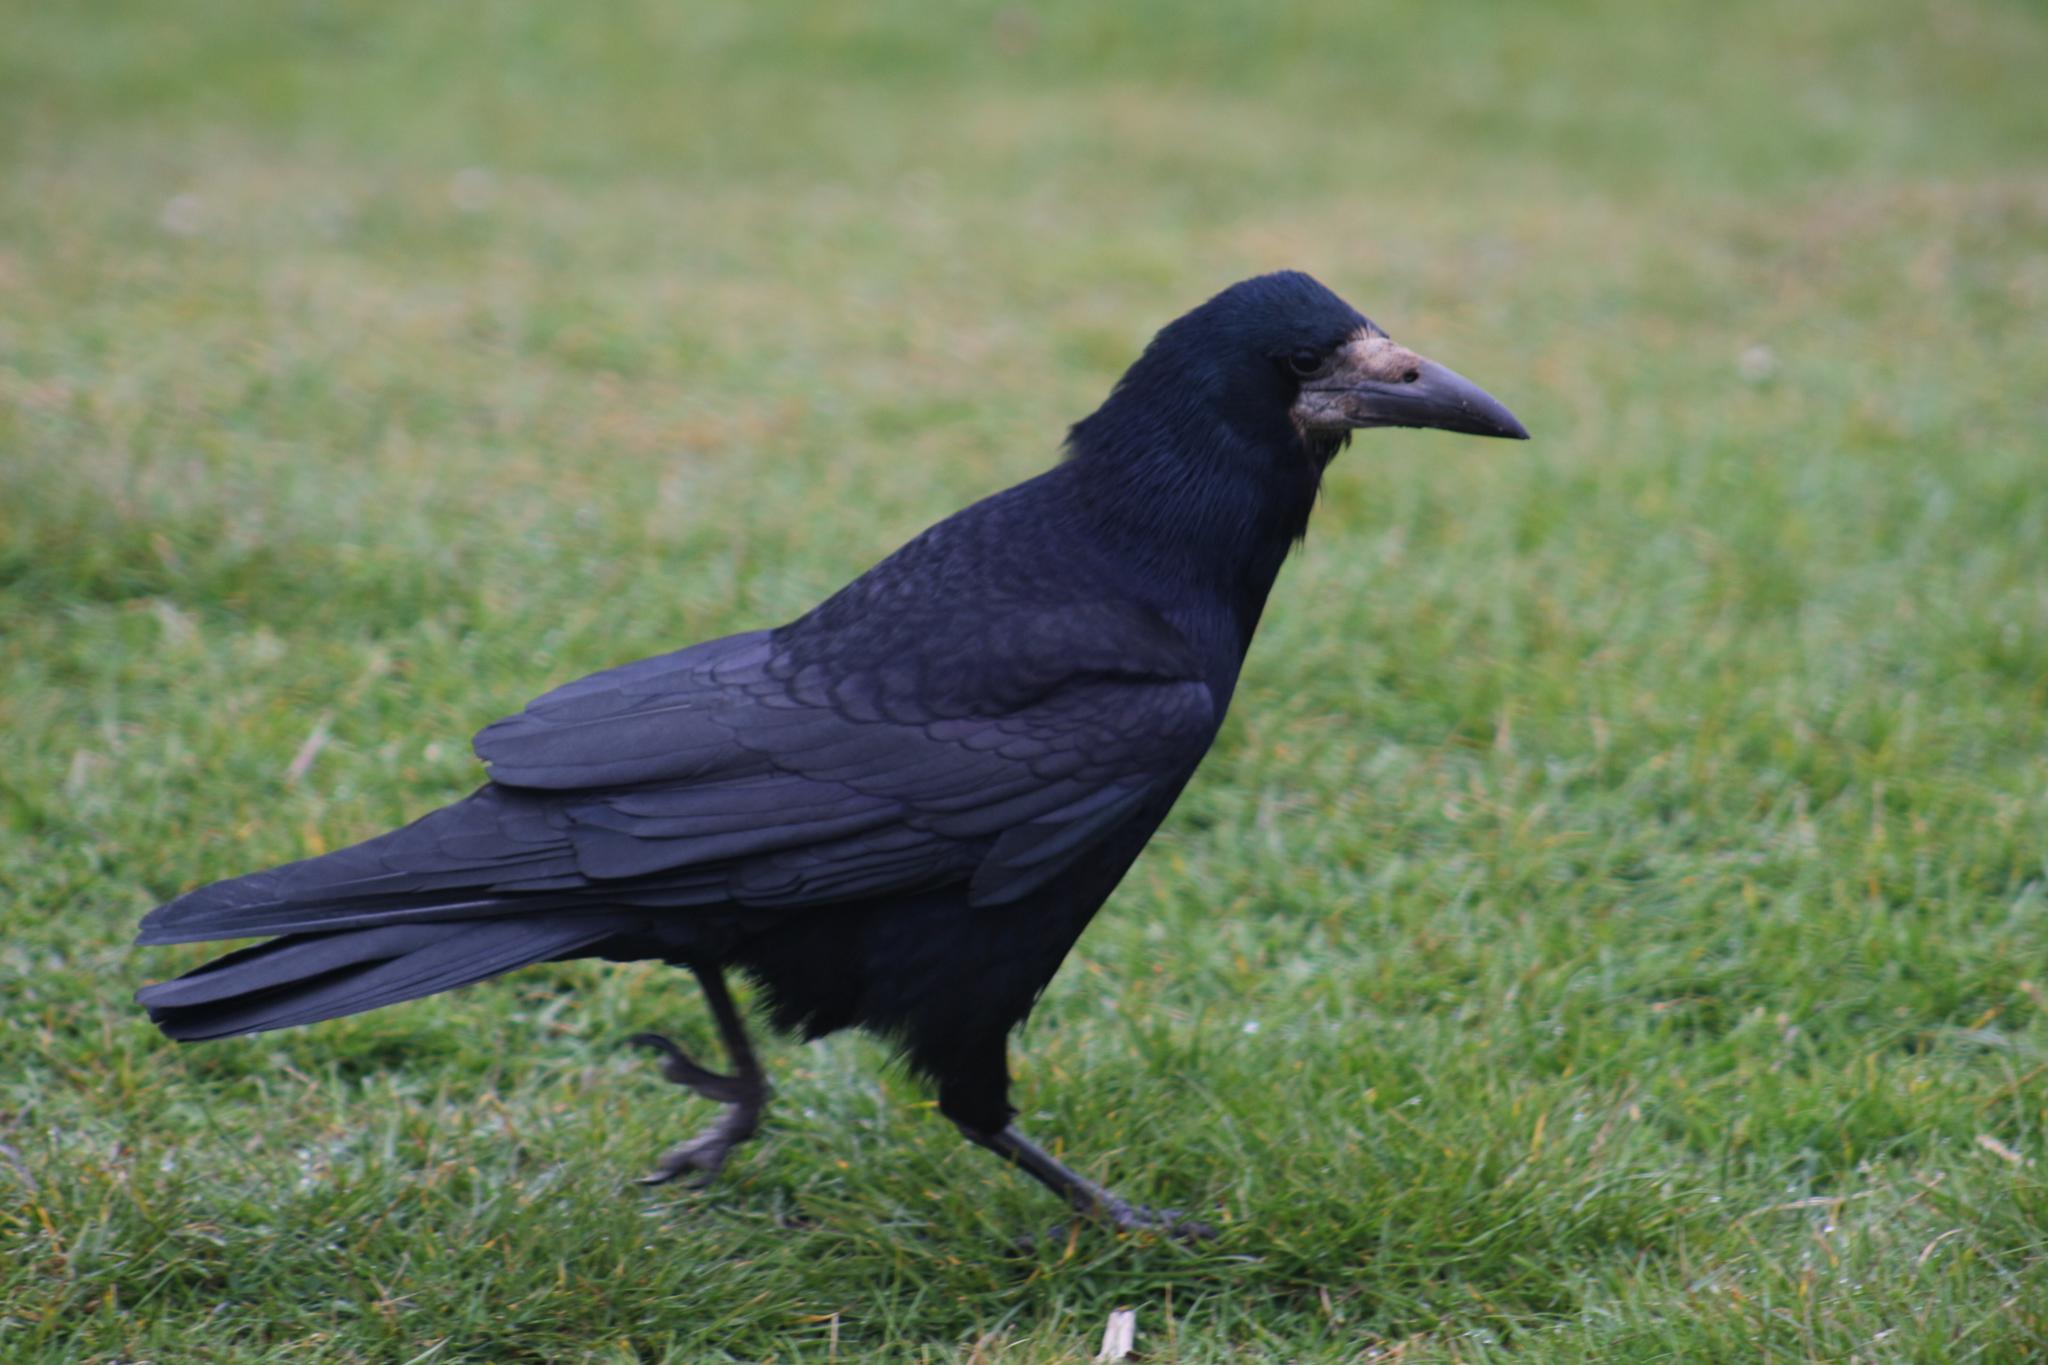 the raven by nigel.acteson.9